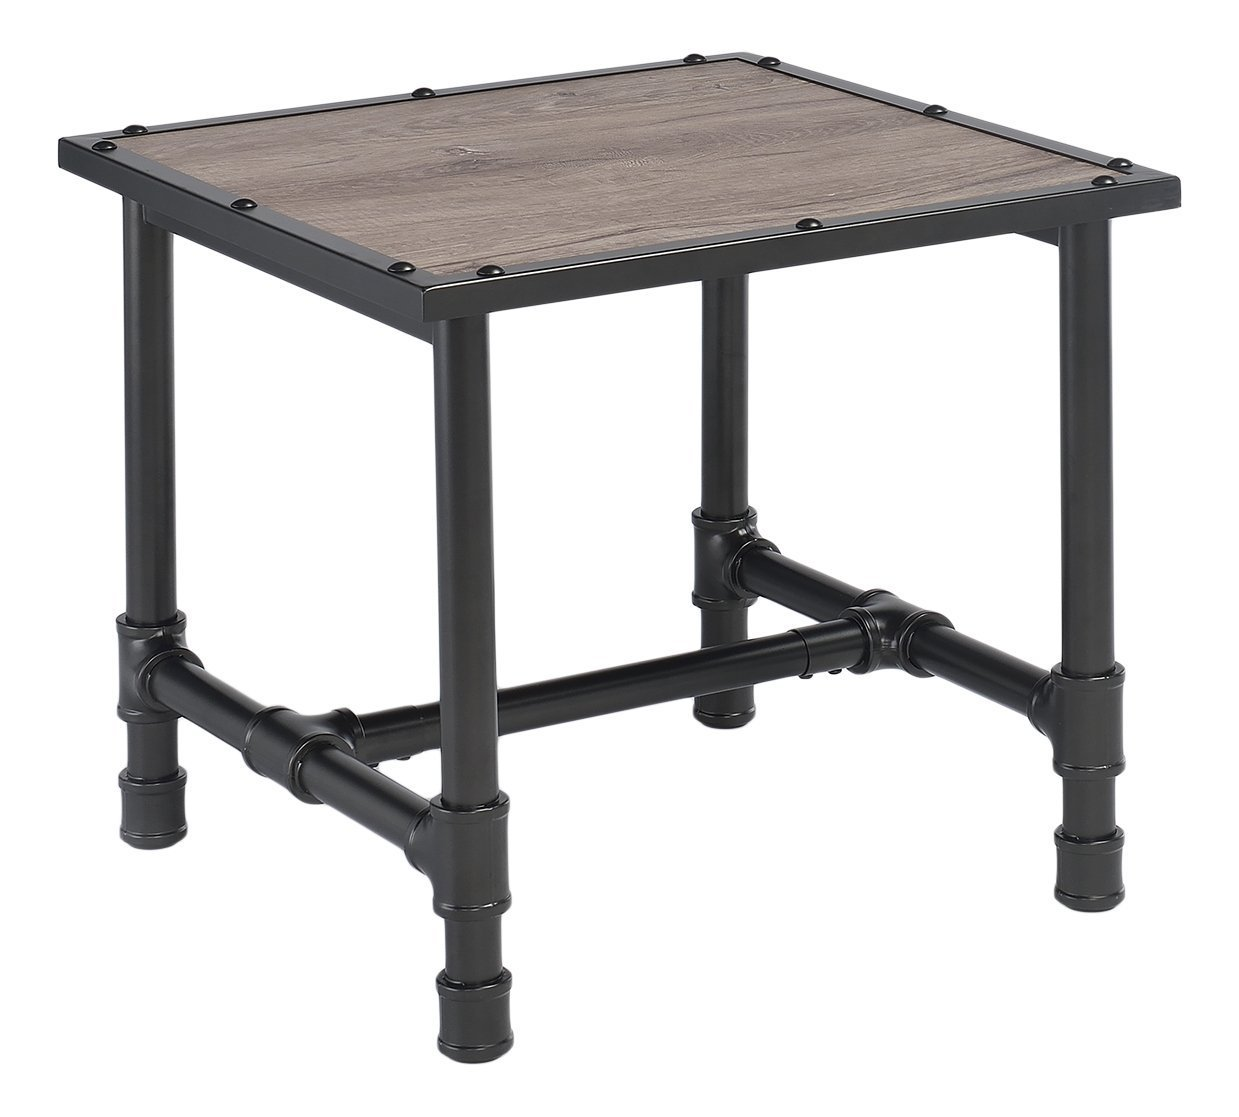 Major-Q Industrial Style End Table for Living Room, Rectangular, Wood Rustic and Oak Finish, 24 x 24 x 23 - Major-Q is a registered furniture trademark brand. All Major-Q Products will be covered with Limited Major-Q Warranty. Please buy with confidence. Rustic oak finish - living-room-furniture, living-room, end-tables - 61dP9vRMCOL -